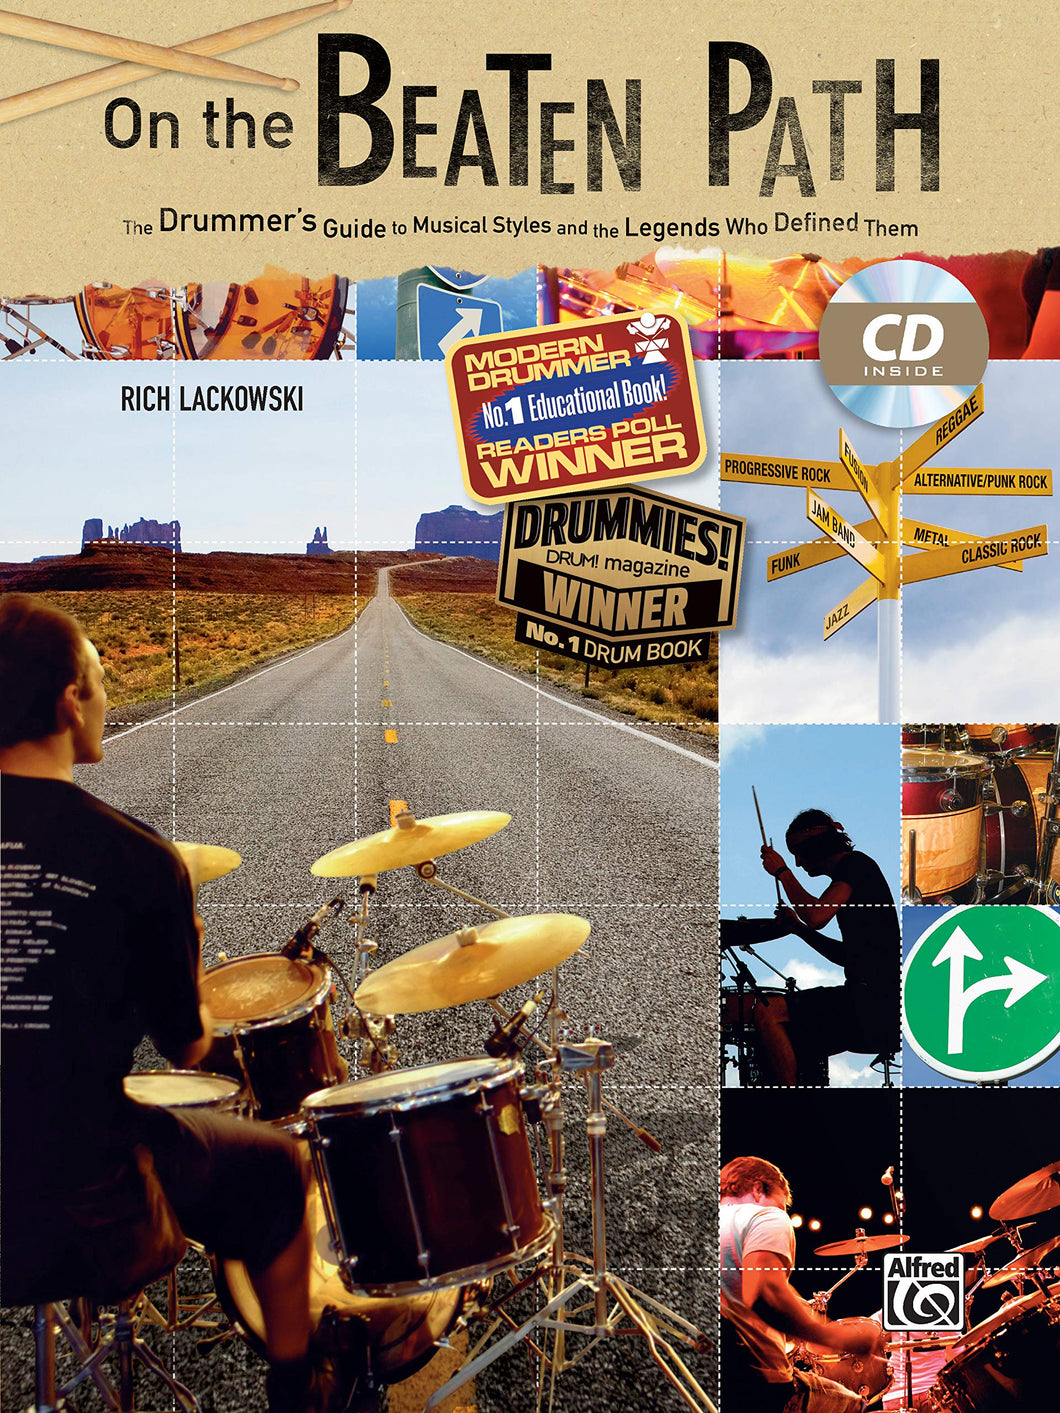 Limb by Limb - Phish - Collection of Drum Transcriptions / Drum Sheet Music - Alfred Music OBPDGMS